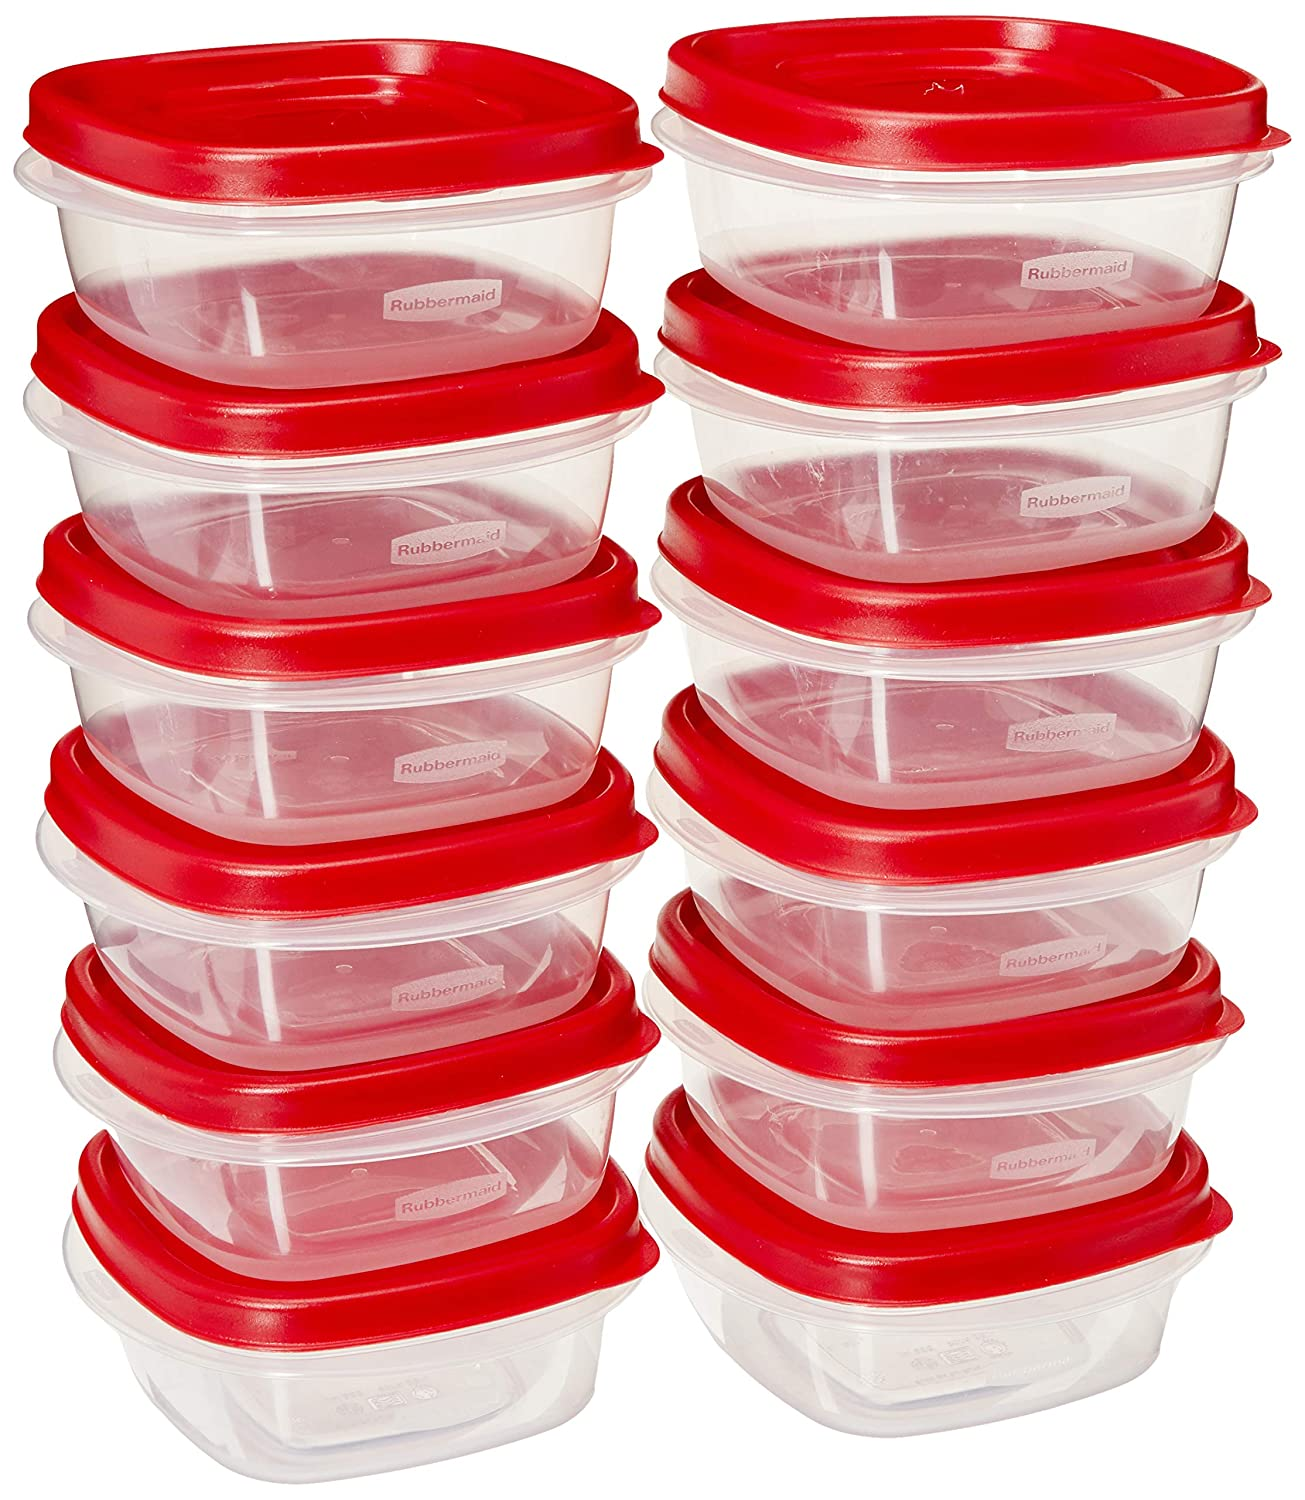 Rubbermaid COMIN18JU082133 669900229708 Easy Find Lid Square 1-1/4-Cup Food Storage Container, 12 Pack, 12-Pack, Red, Clear